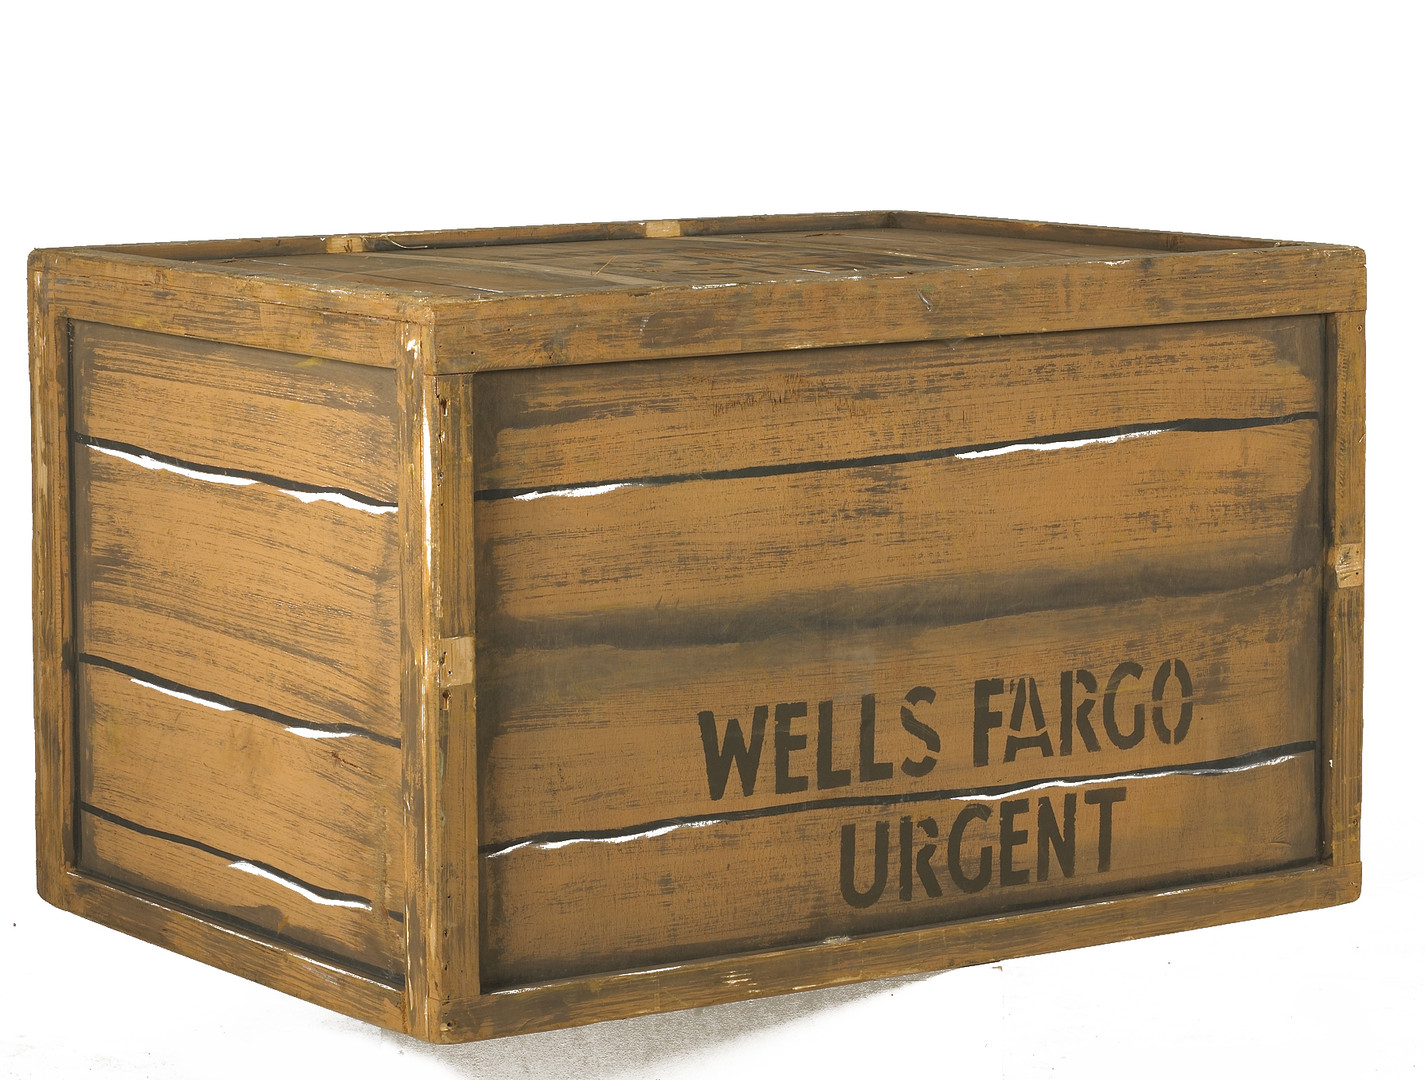 Wells Fargo Crate Prop Hire - Staging Services